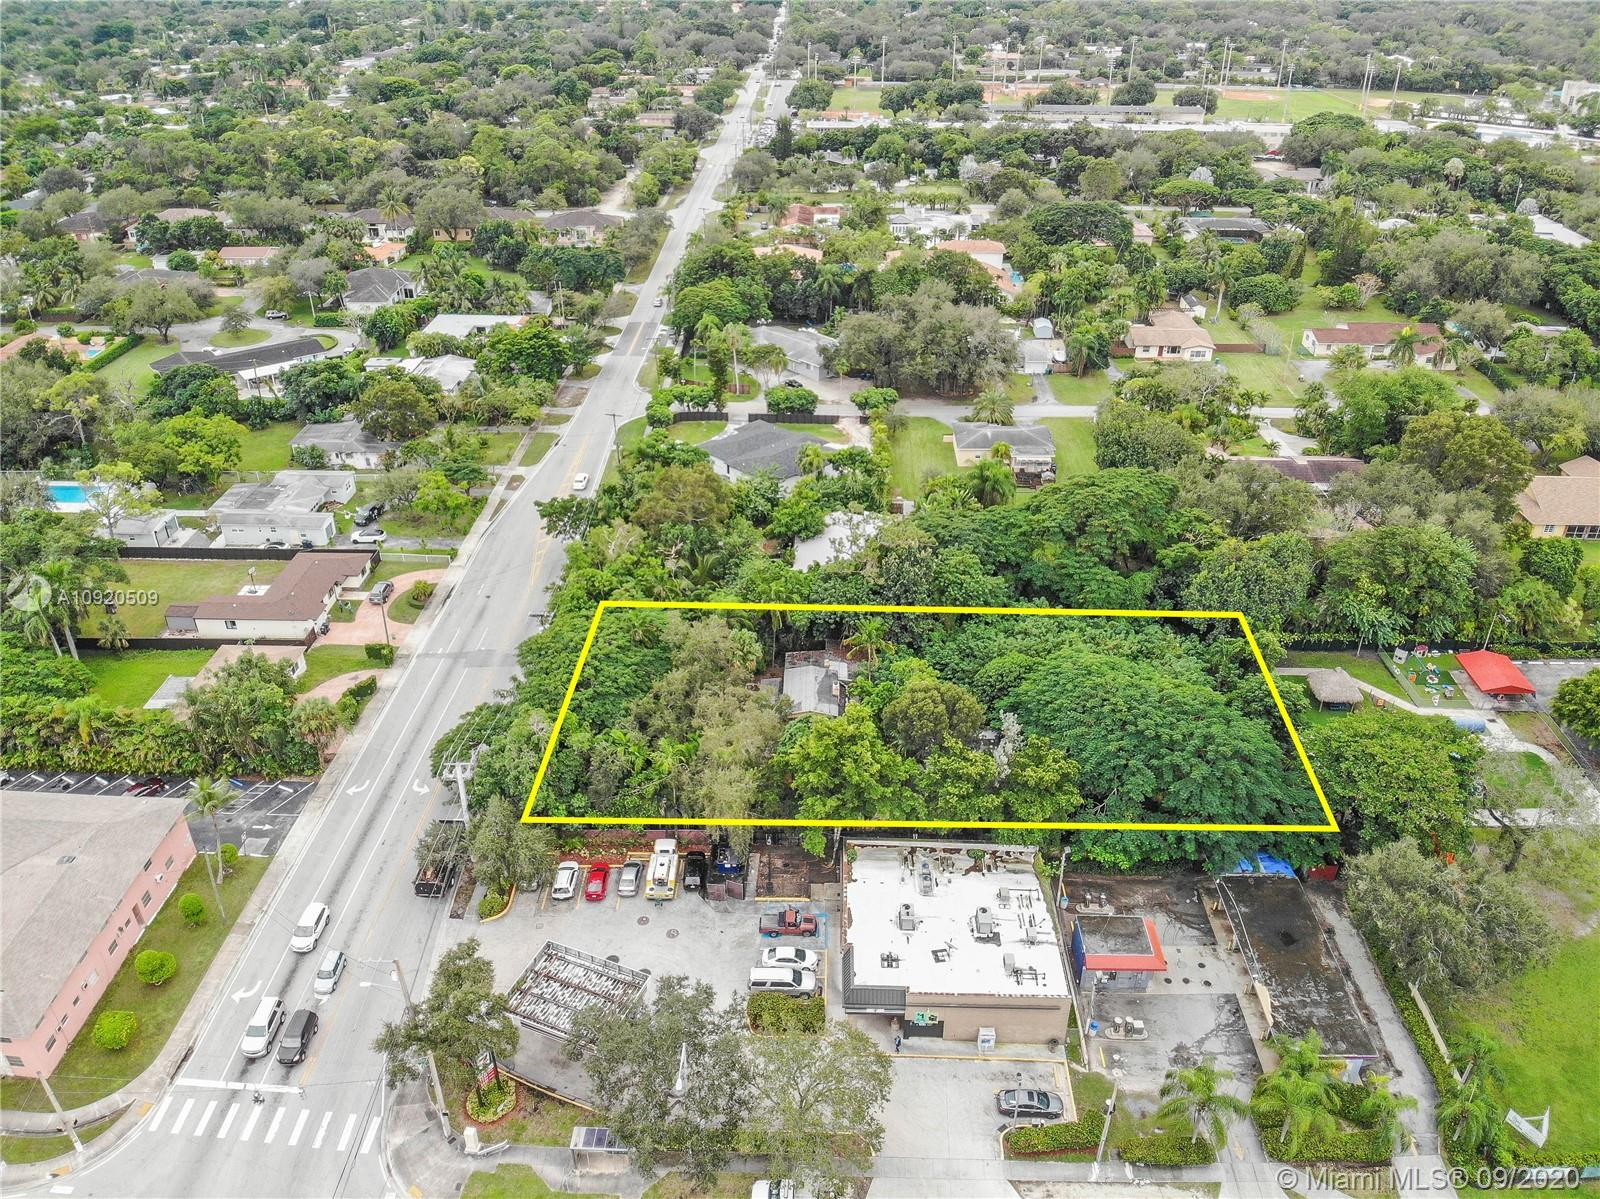 Huge lot in highly sought after South Miami neighborhood. This magnificent piece of property is surrounded by historic trees. At close to 3/4 acre this lot is a dream for a builder/developer. This home is currently occupied, please do not disturb tenants. Priced is based on land value only as the structure may need to be fully renovated or demolished.